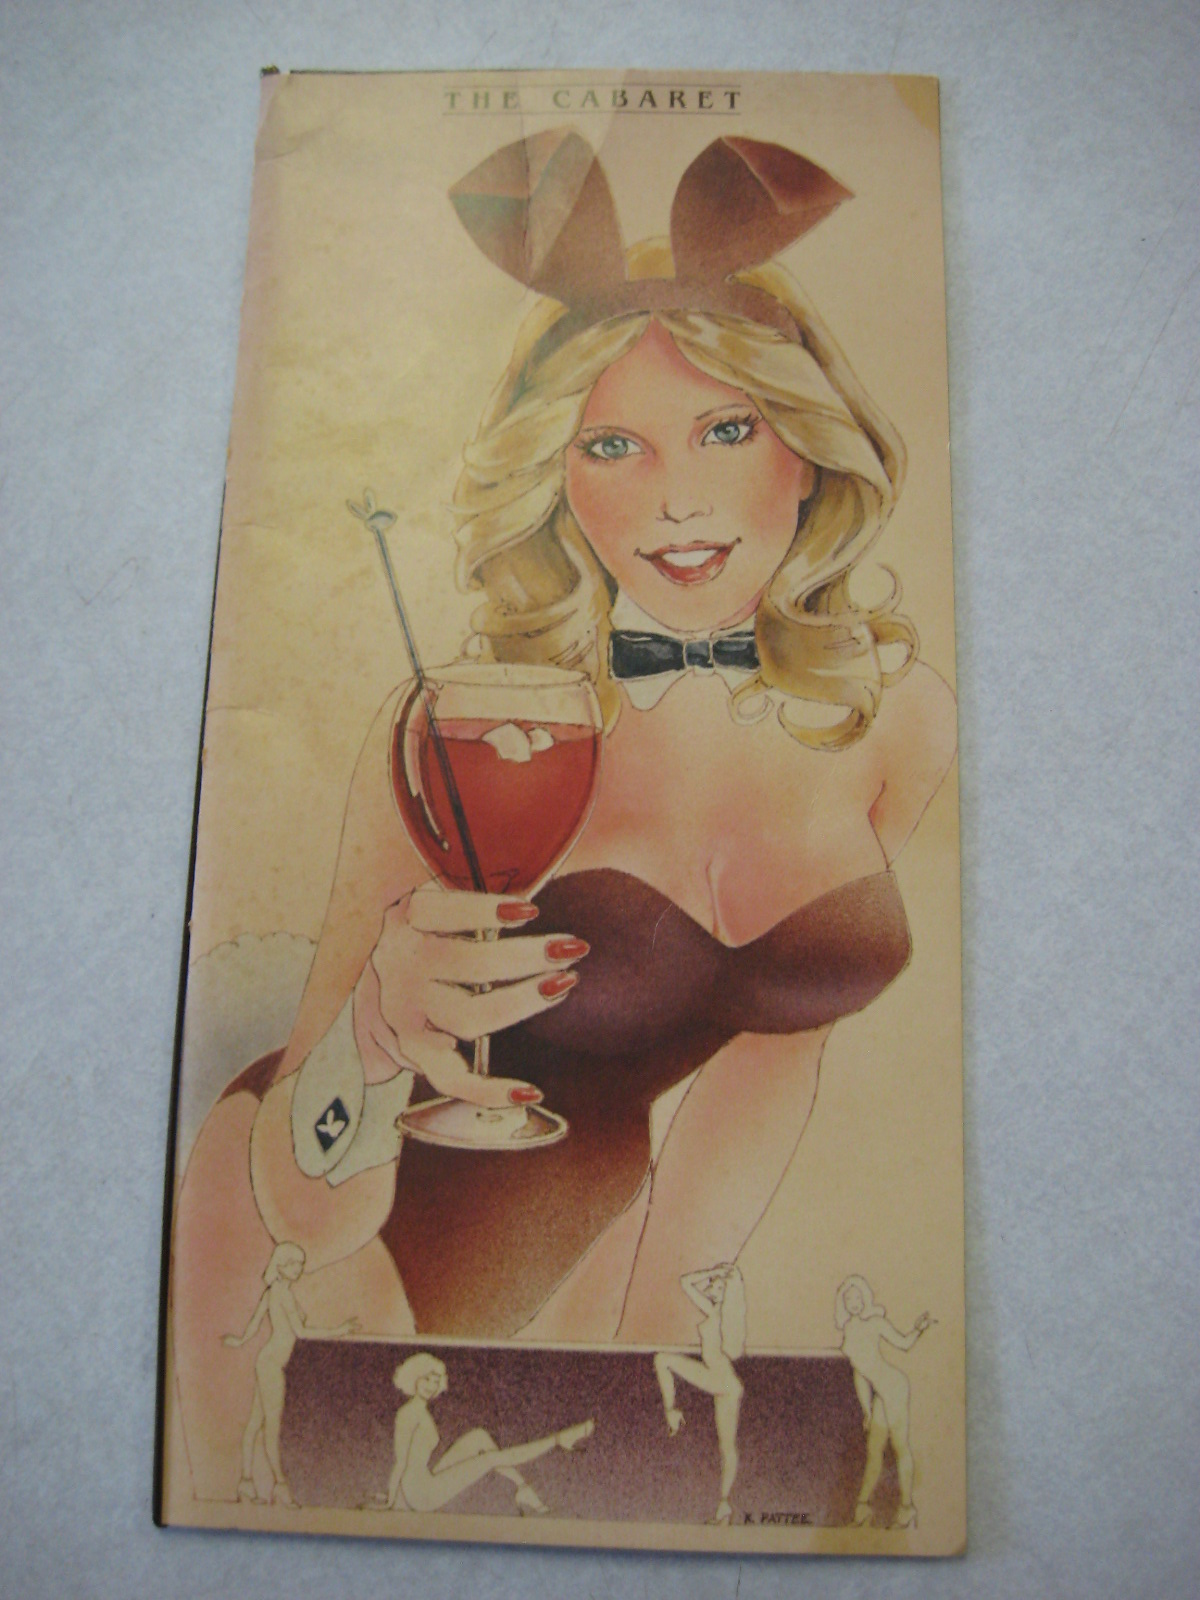 Lake Geneva Playboy Club Cabaret Menu